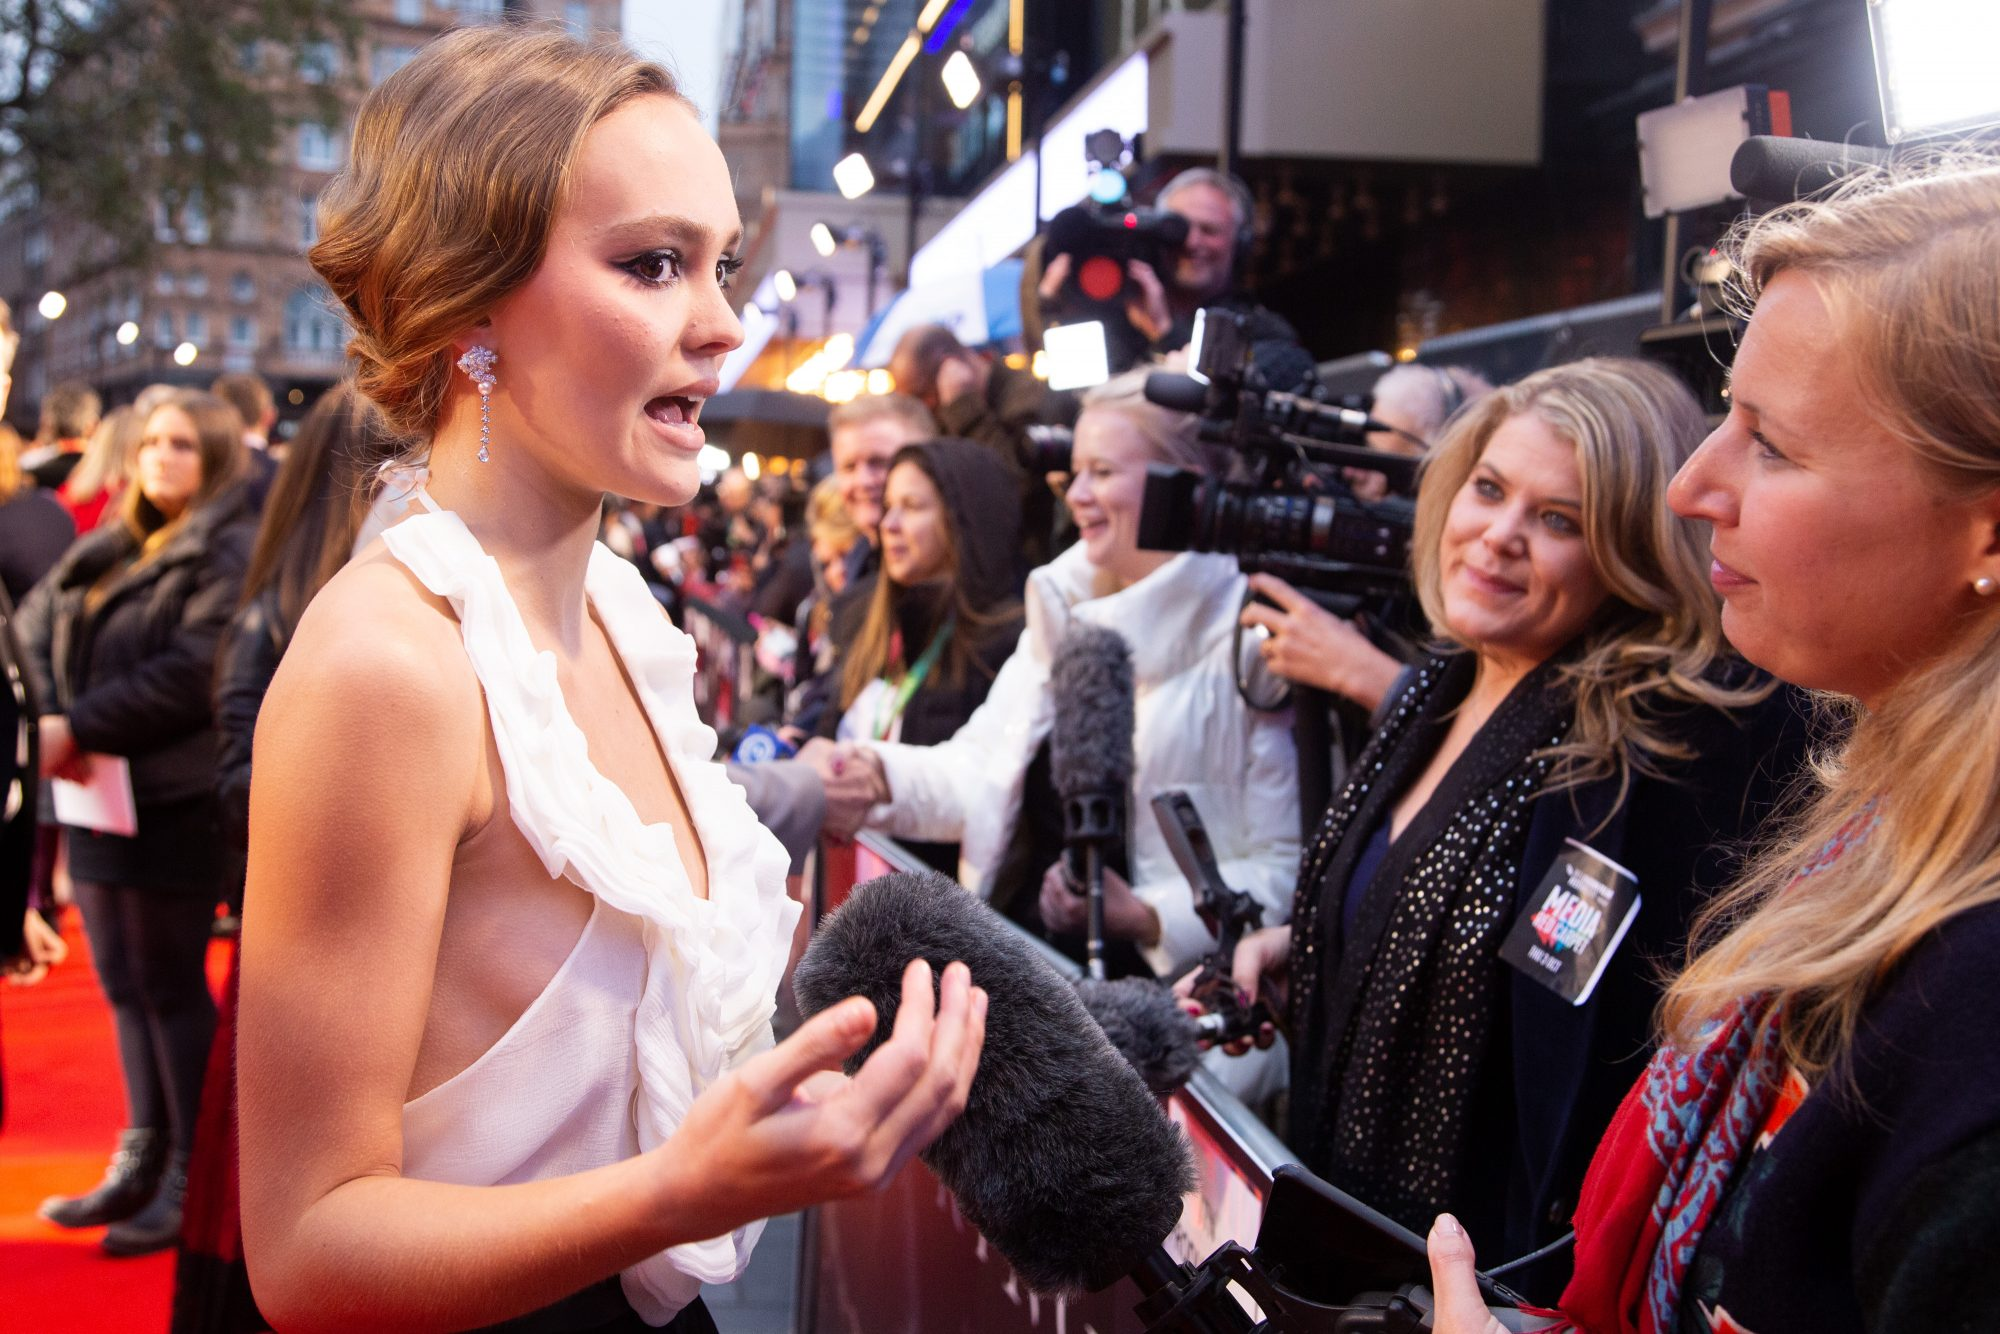 Lily-Rose Depp at The King UK Premiere during the 63rd BFI London Film Festival at Odeon Luxe Leicester Square on 3rd October 2019.  Photos: Netflix